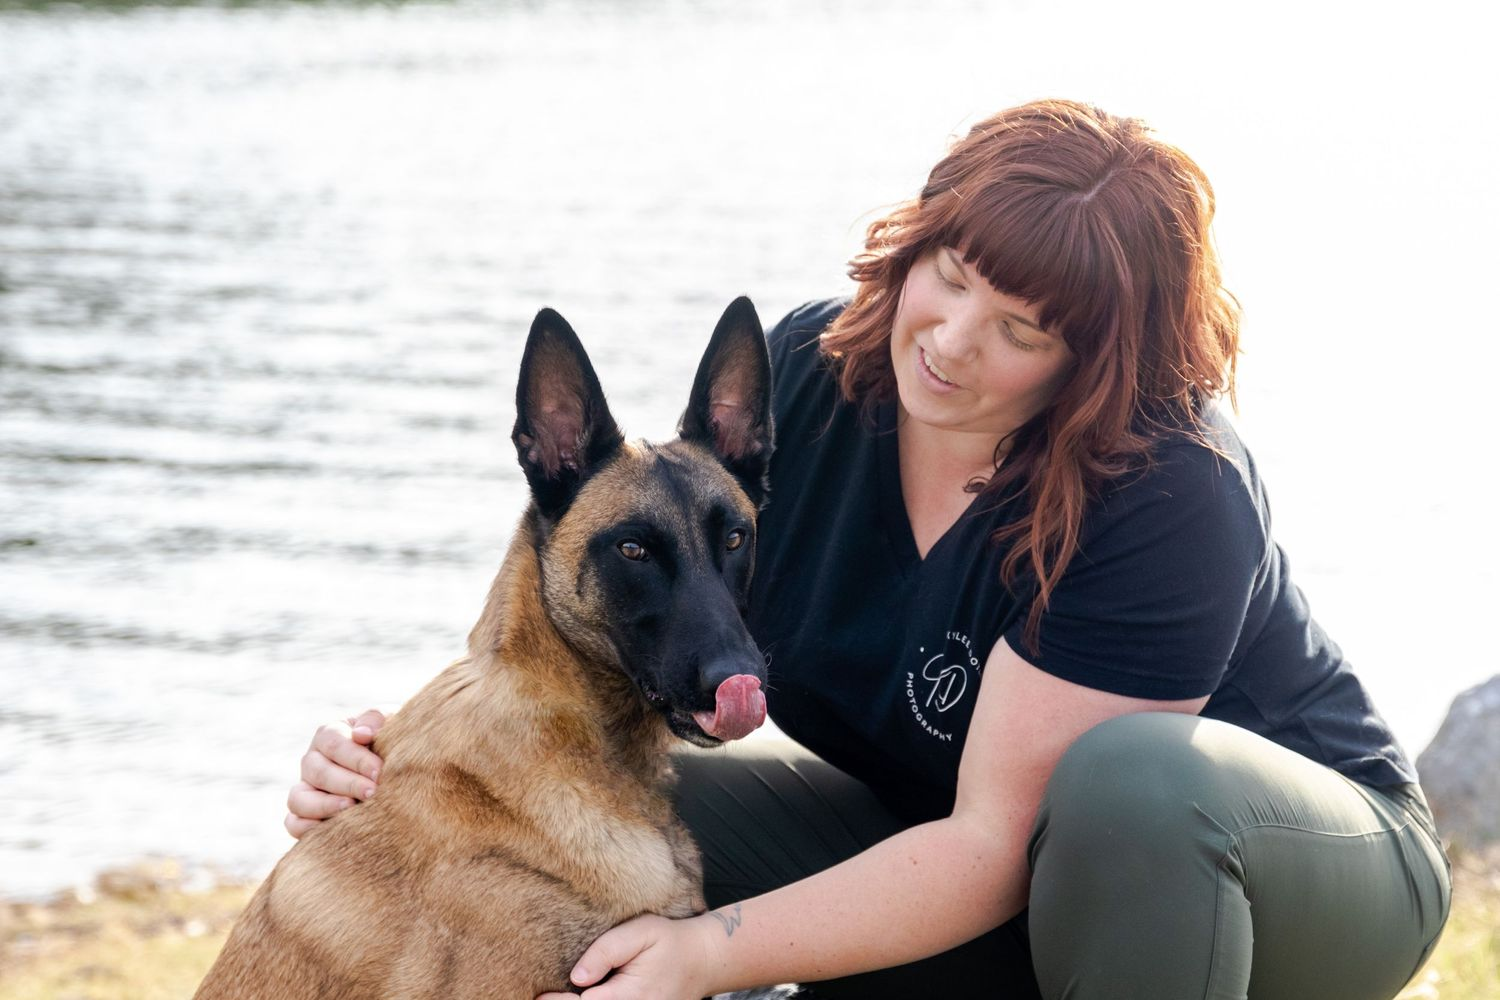 Owner of Kylee Doyle Photography, interacting with a belgian malinois, who is looking at the camera and licking his nose